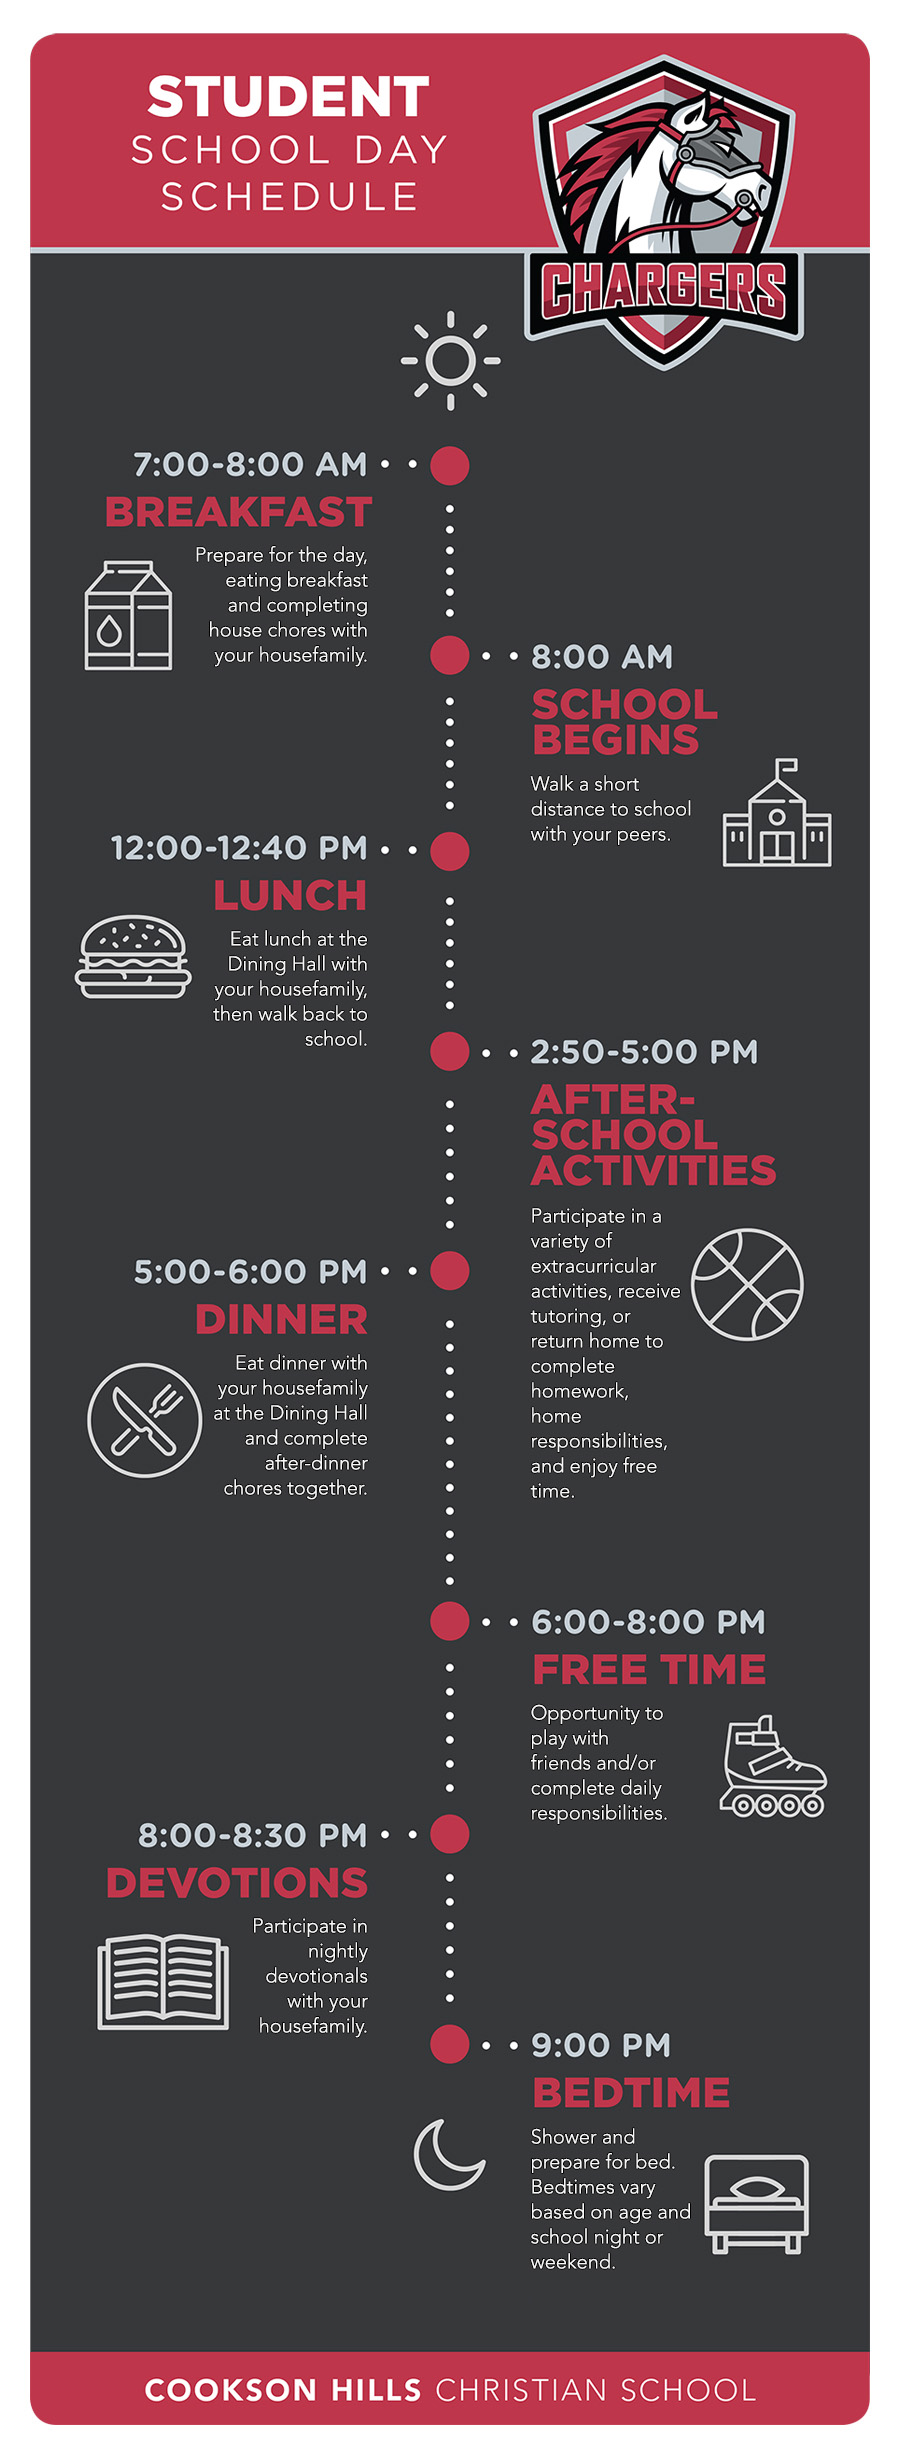 Student Schedule Infographic